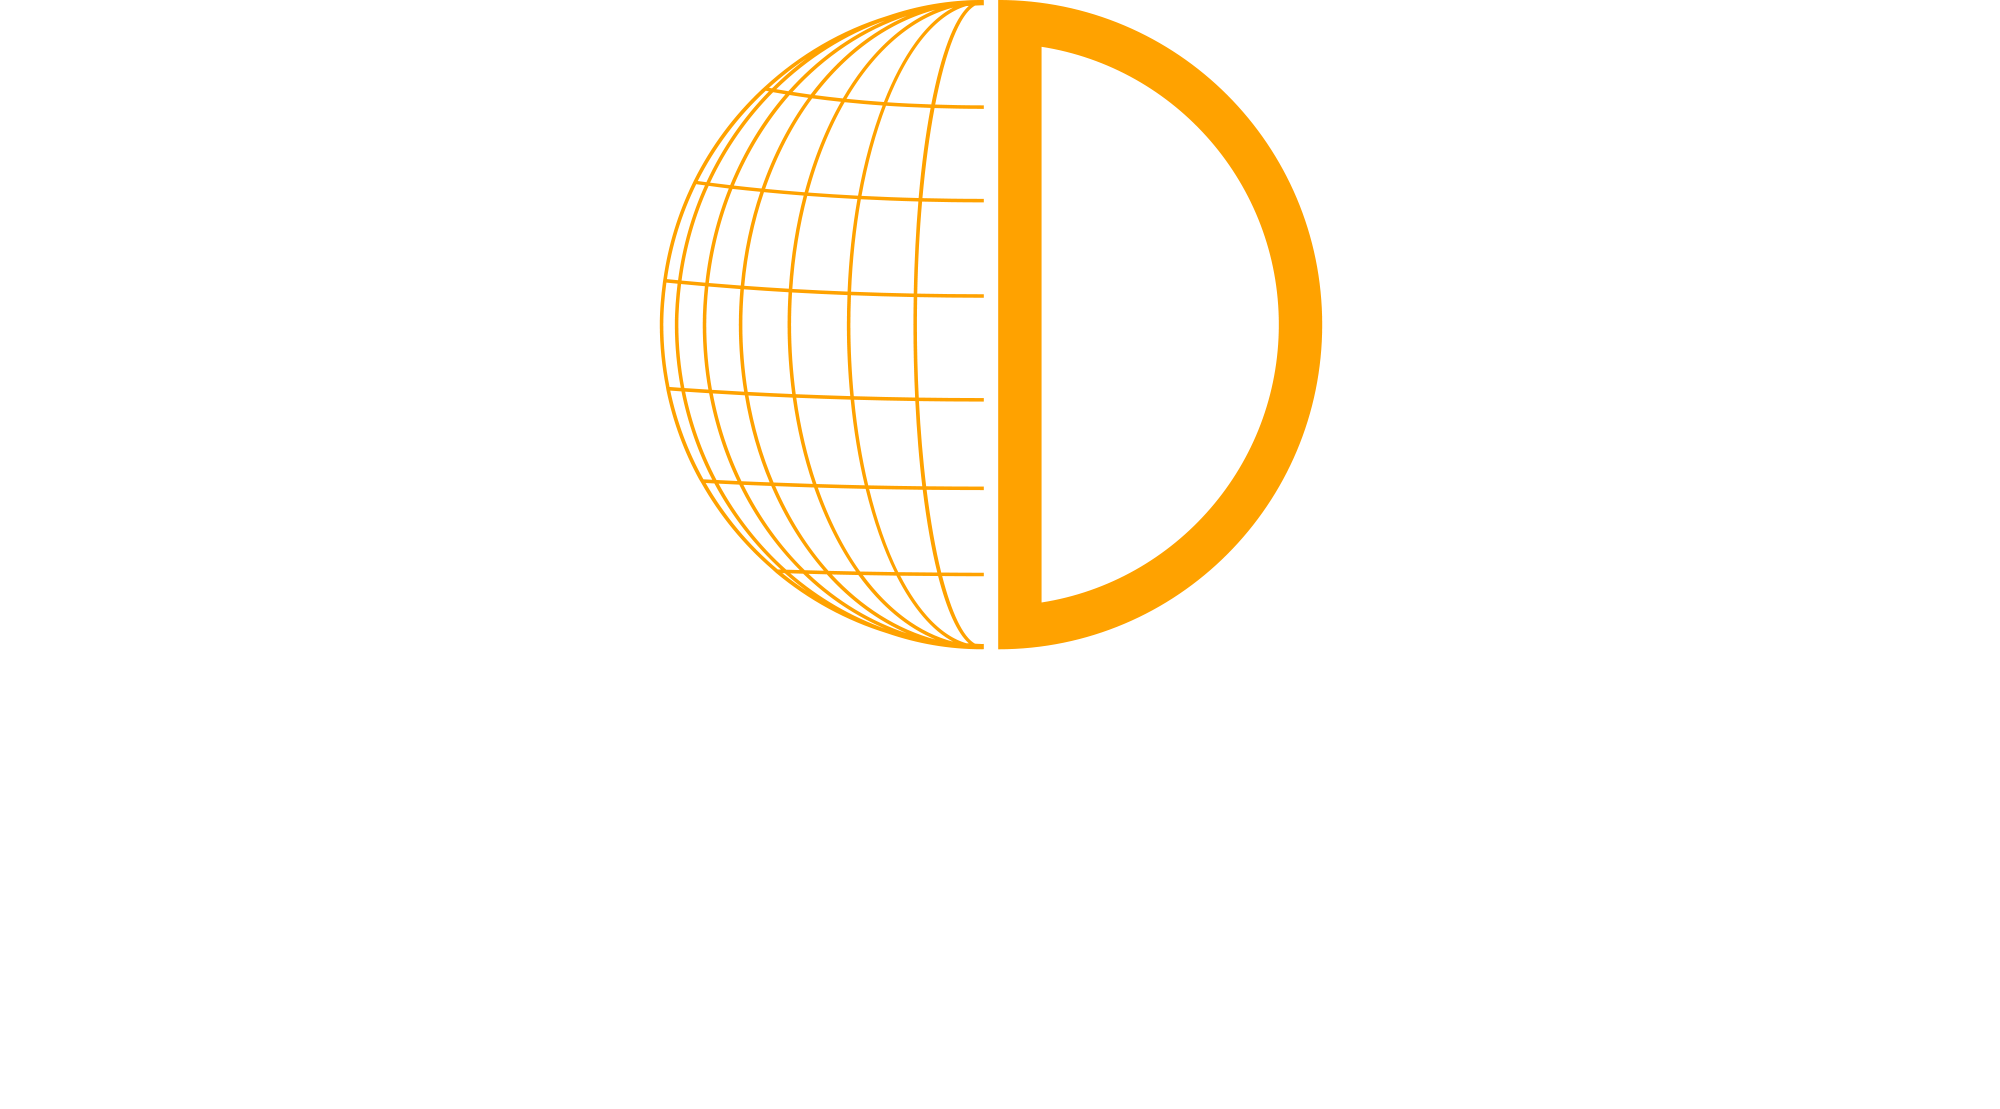 DIVINE FOG REALTY COMPANY